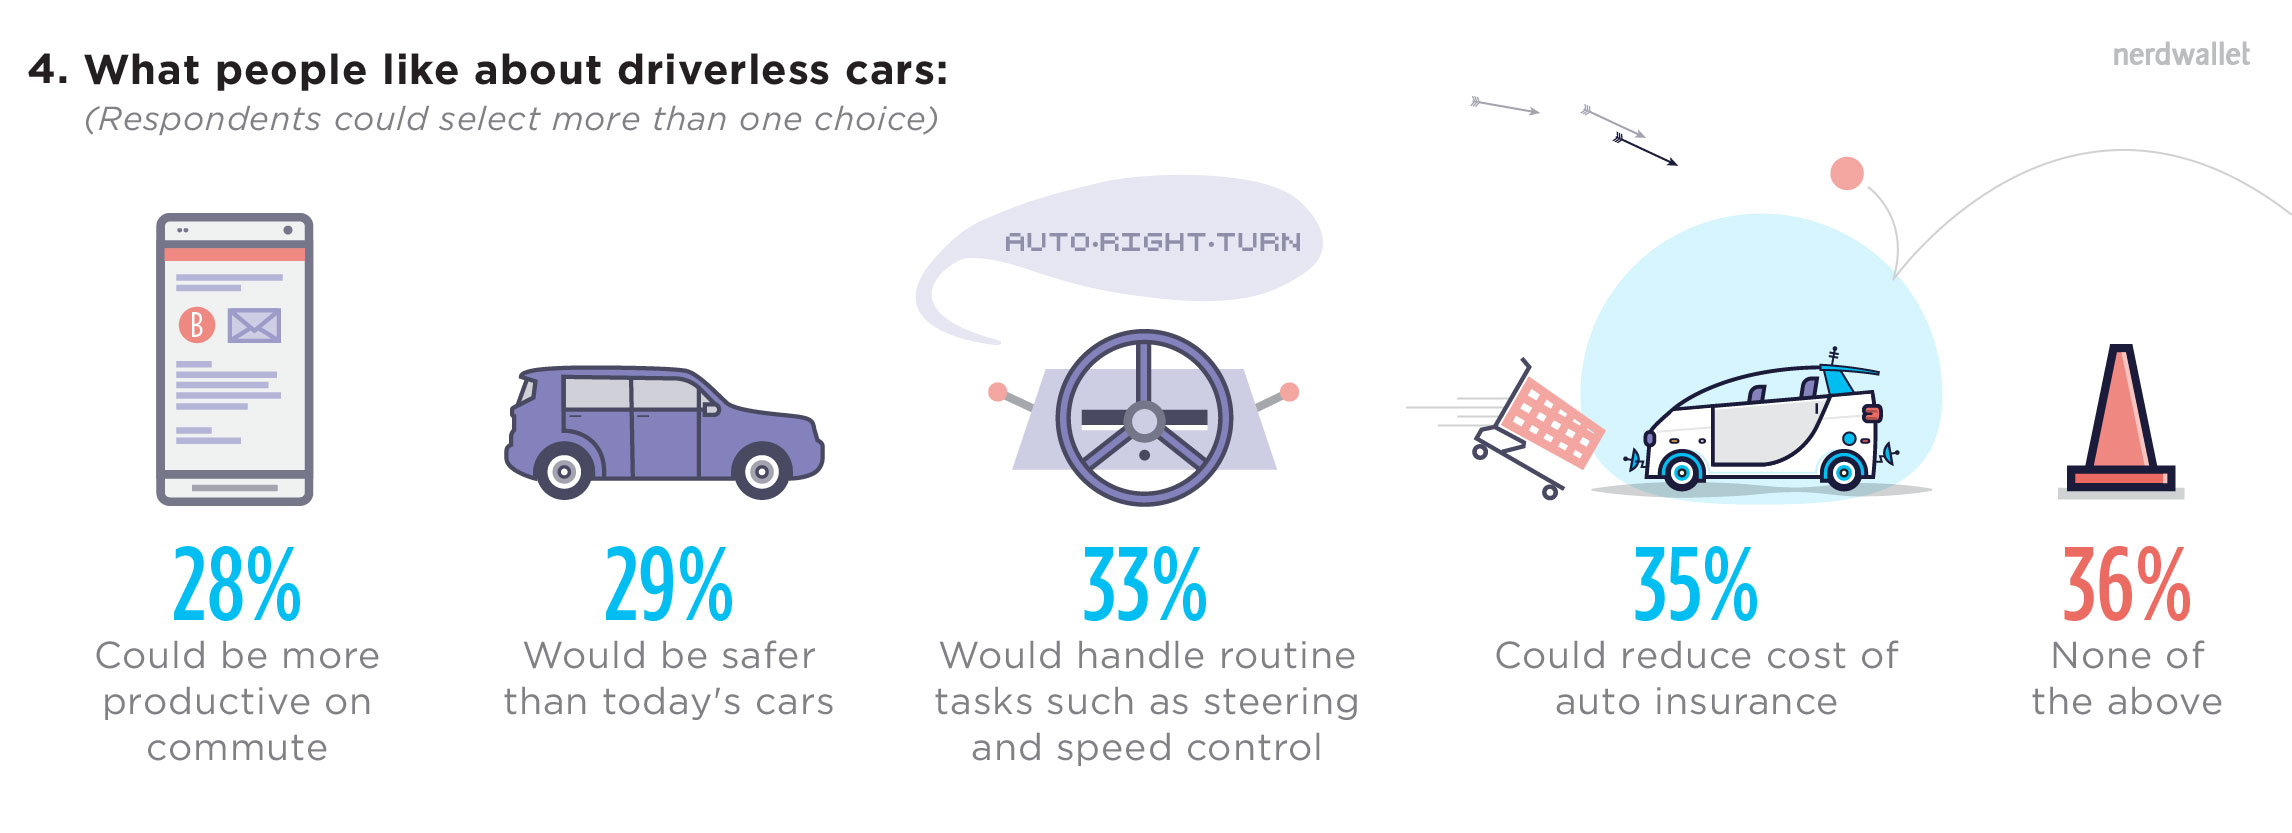 What People Like About Driverless Cars